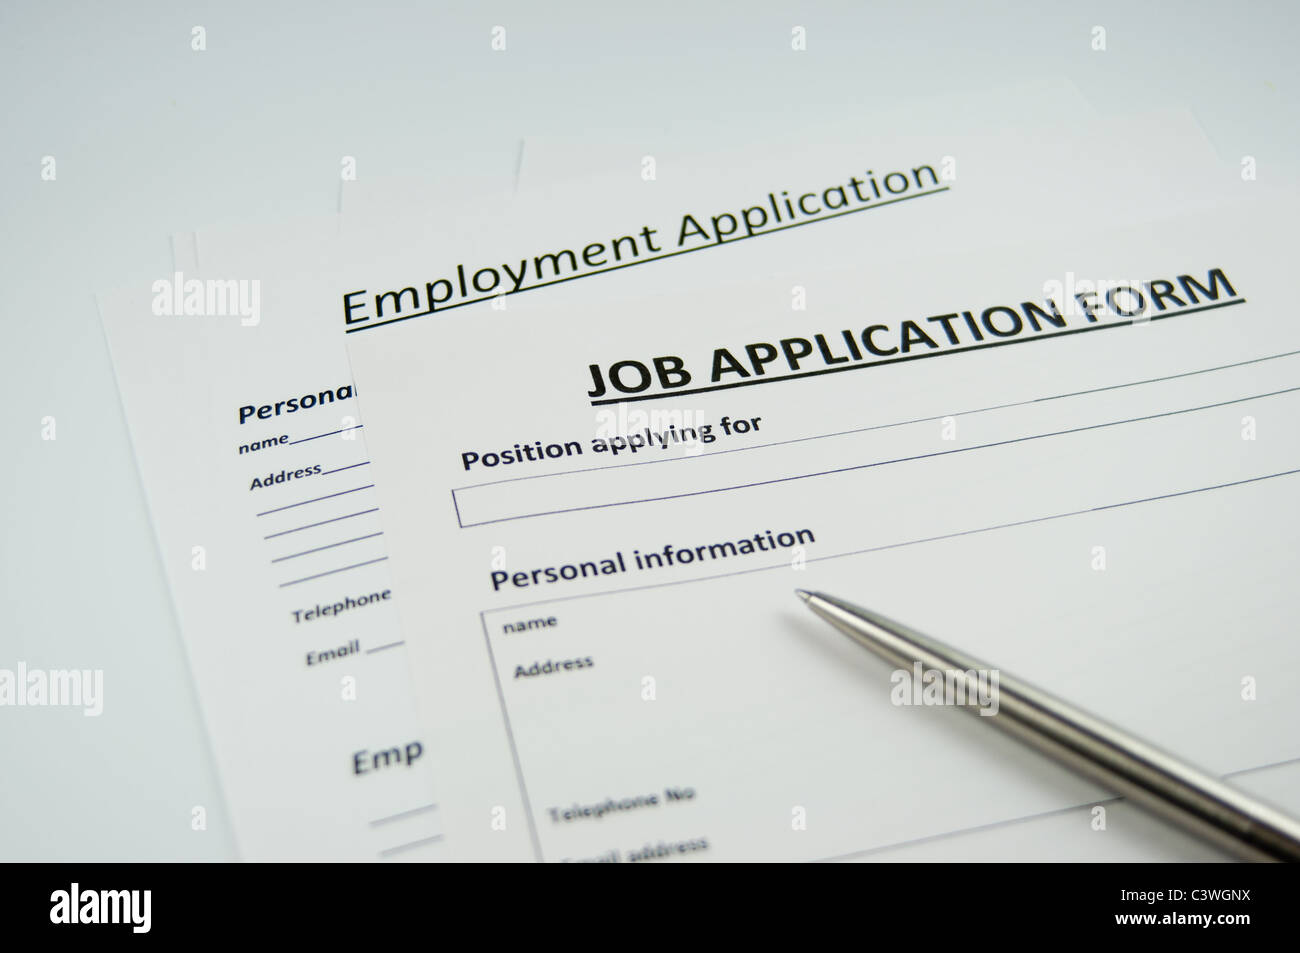 job application forms stock photo 36826662 alamy